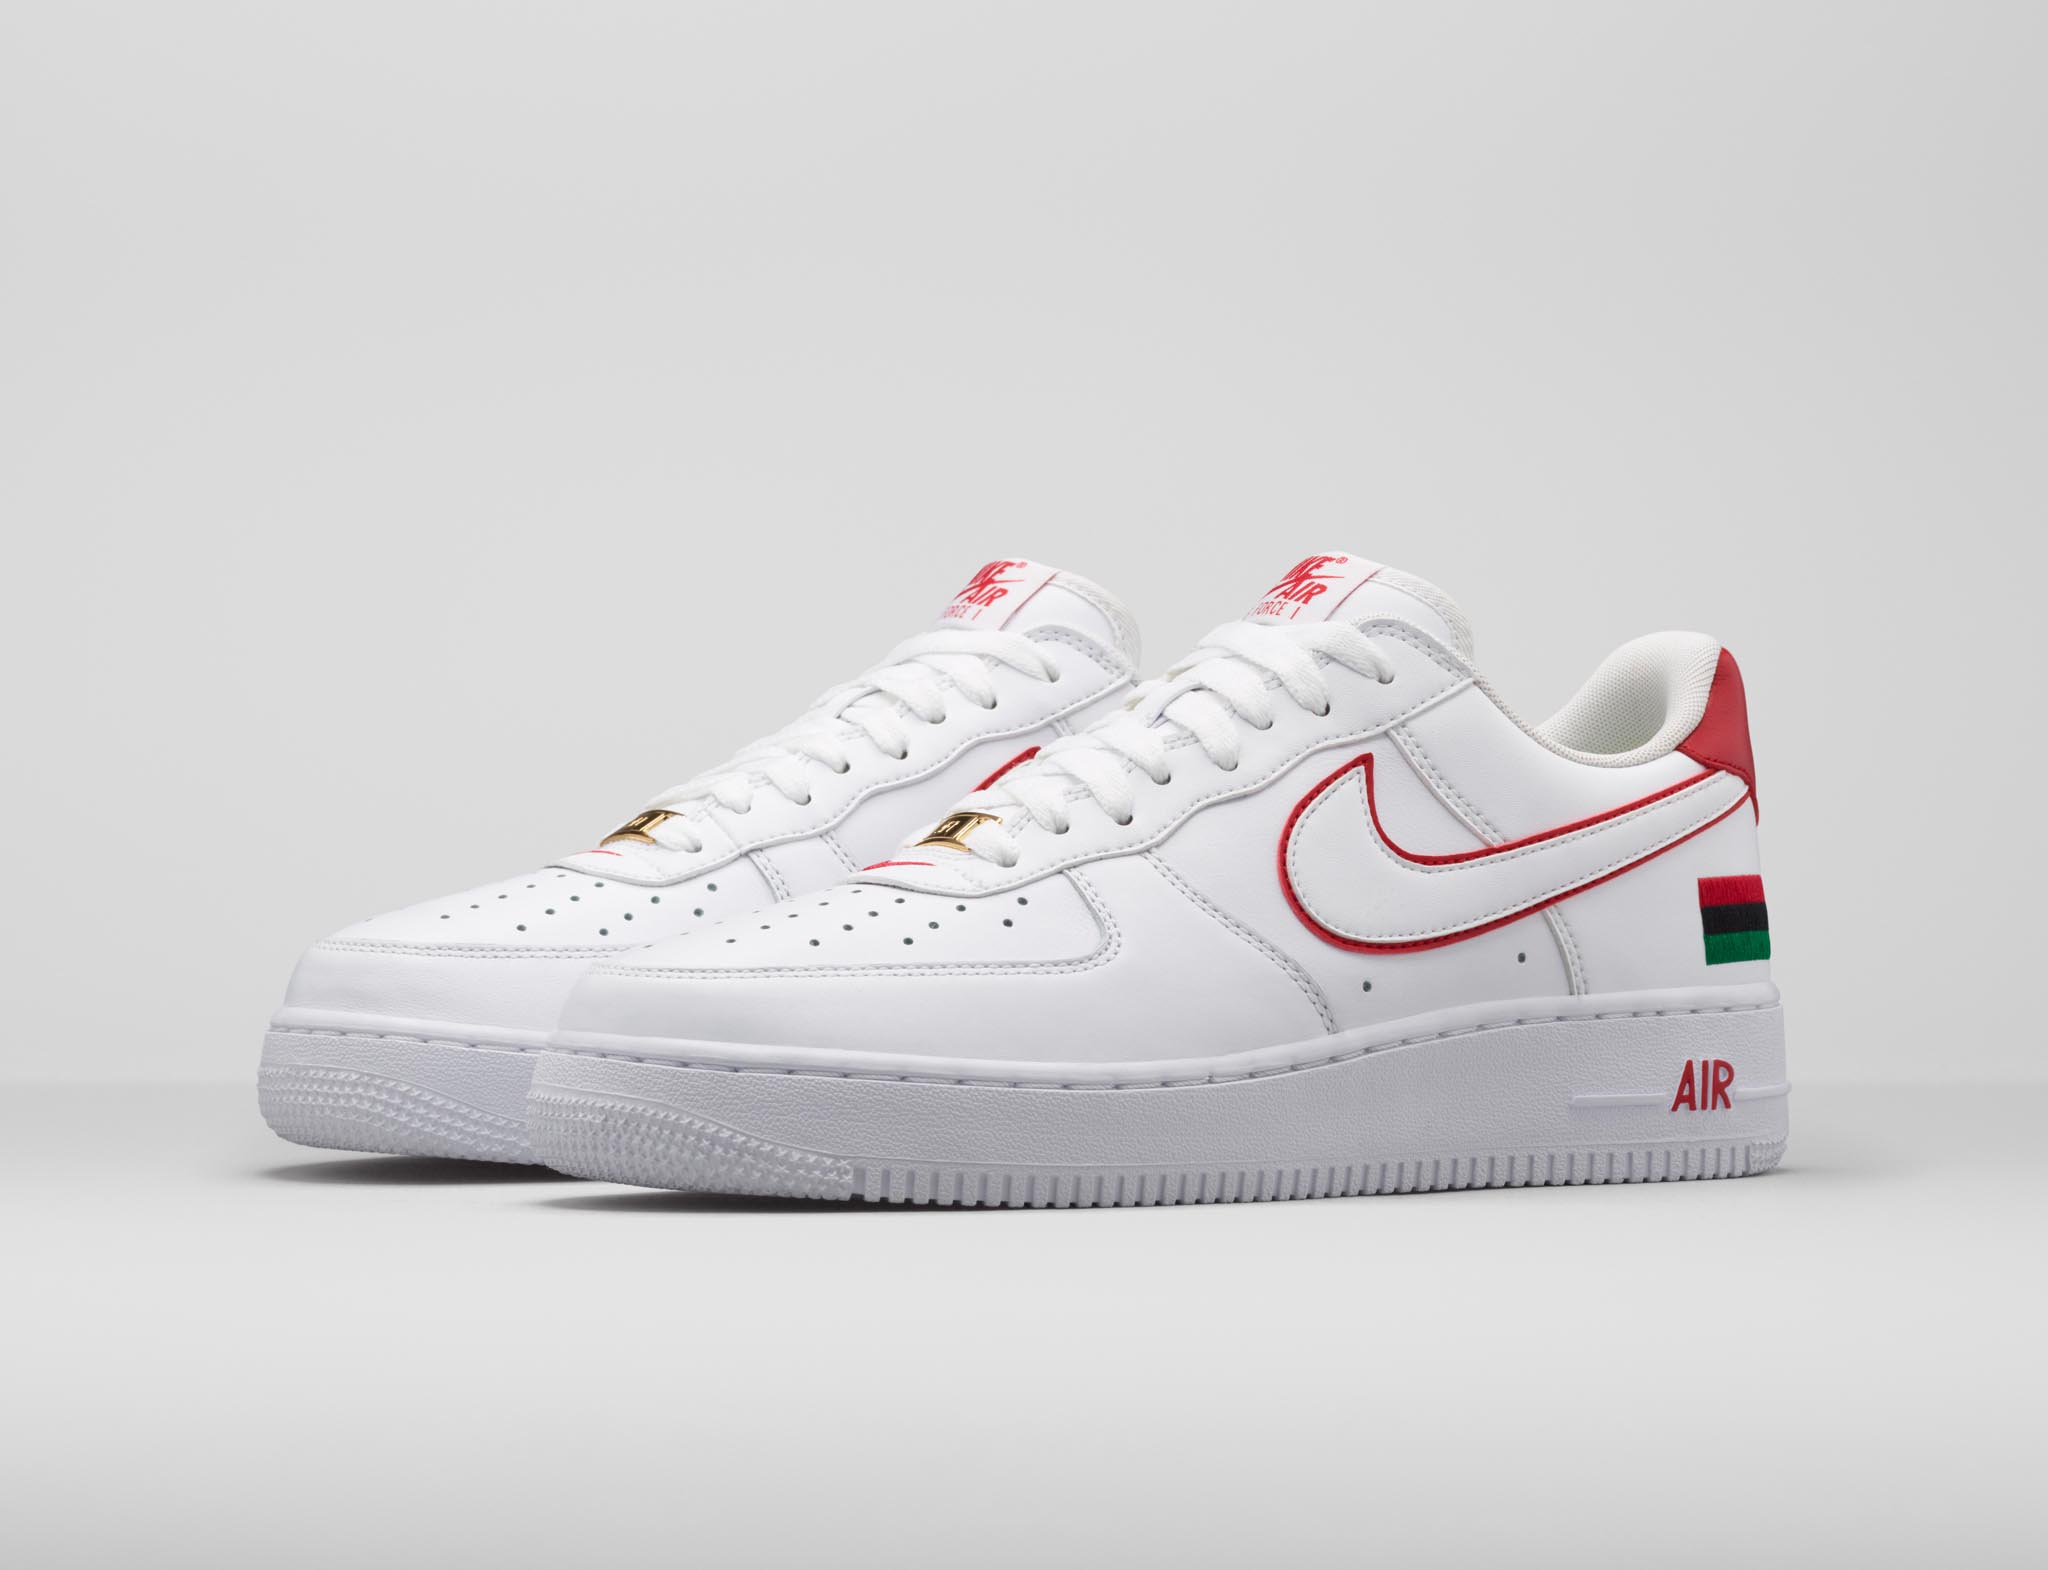 air force 1 low archives air 23 air jordan release dates foamposite air max and more. Black Bedroom Furniture Sets. Home Design Ideas